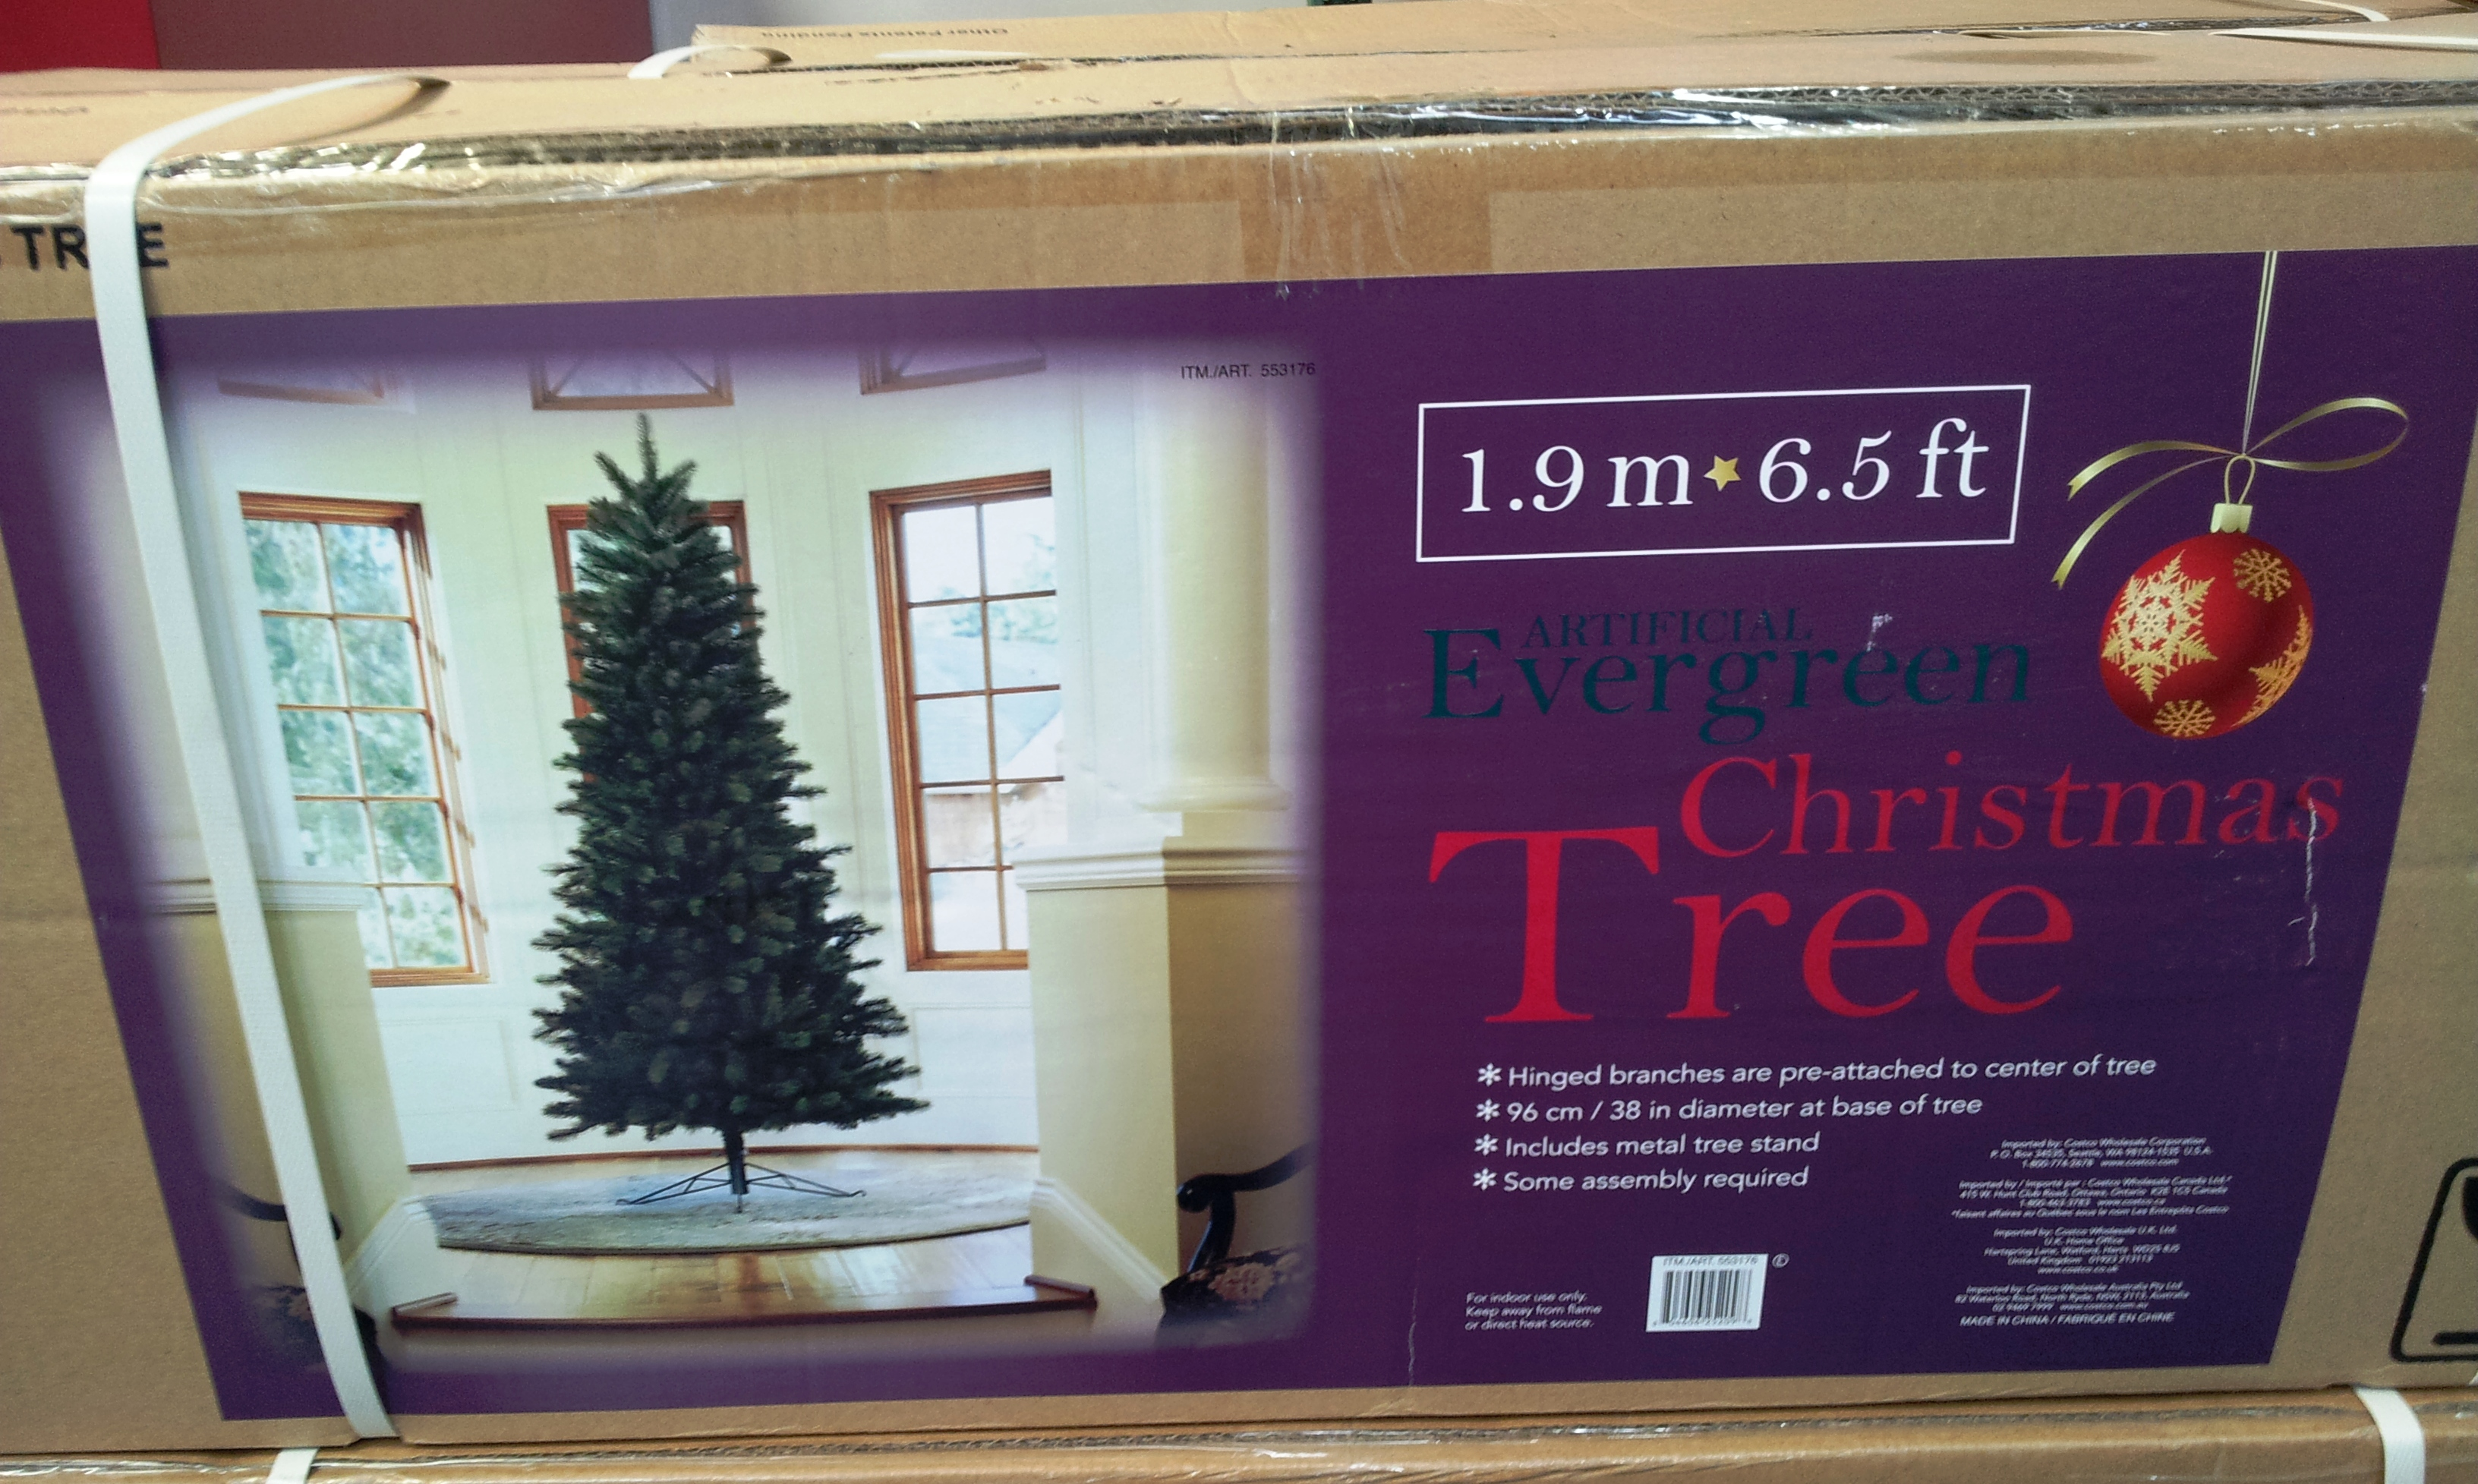 moving on to item no3 yes its bigger this christmas tree stands at 228m 75fft with and almost 15m diameter - Costco Christmas Decorations 2017 Australia